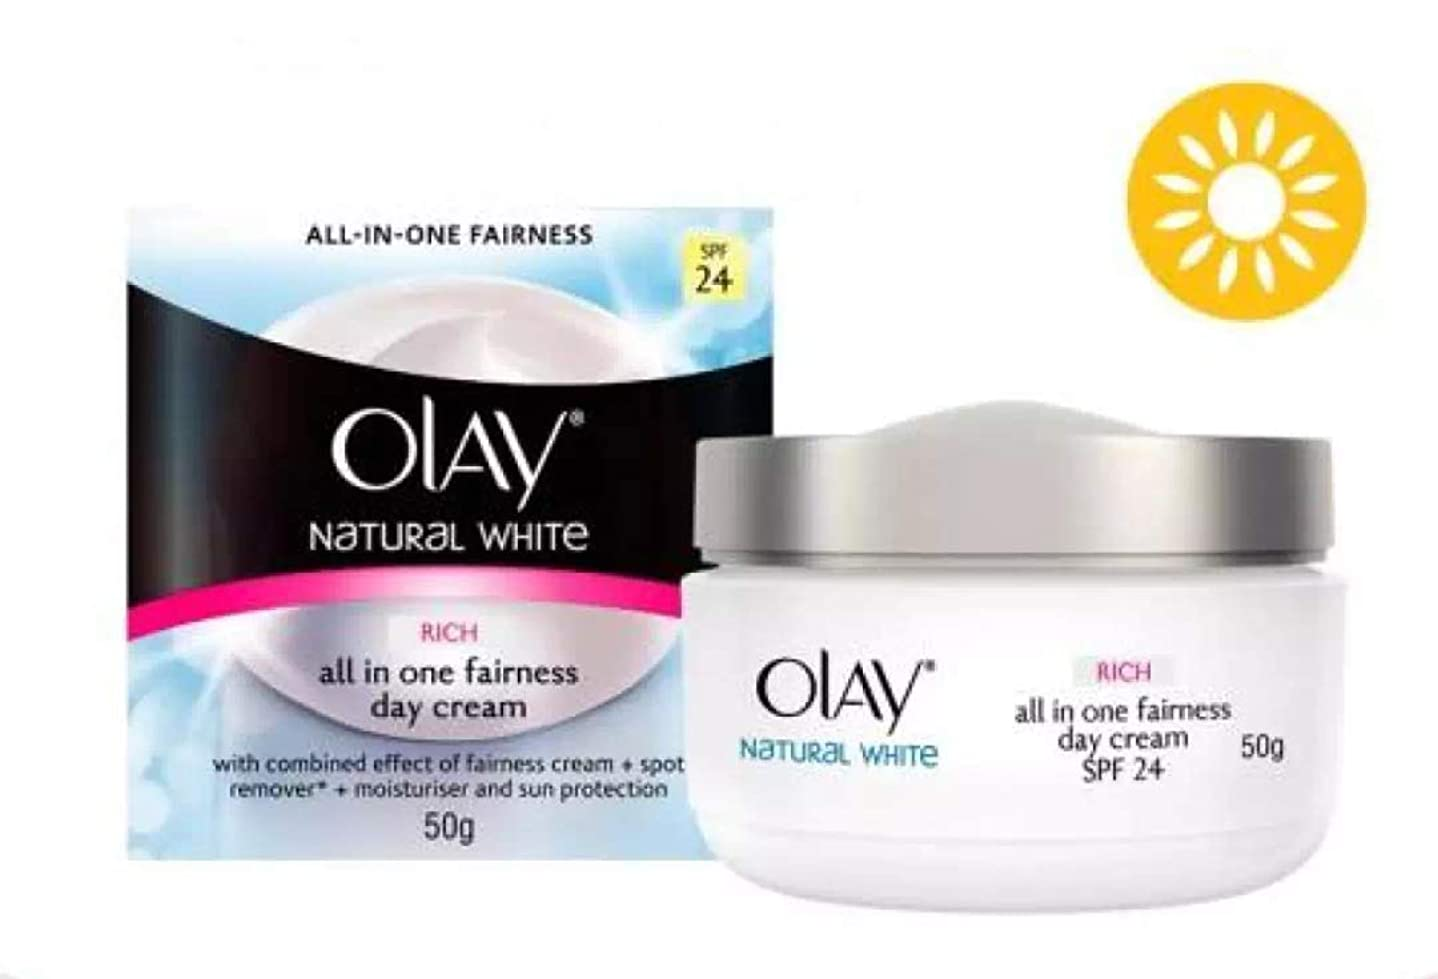 宿題剃るソースOLAY Natural White All-IN-ONE FAIRNESS RICH【DAY】SPF24 50g [並行輸入品]